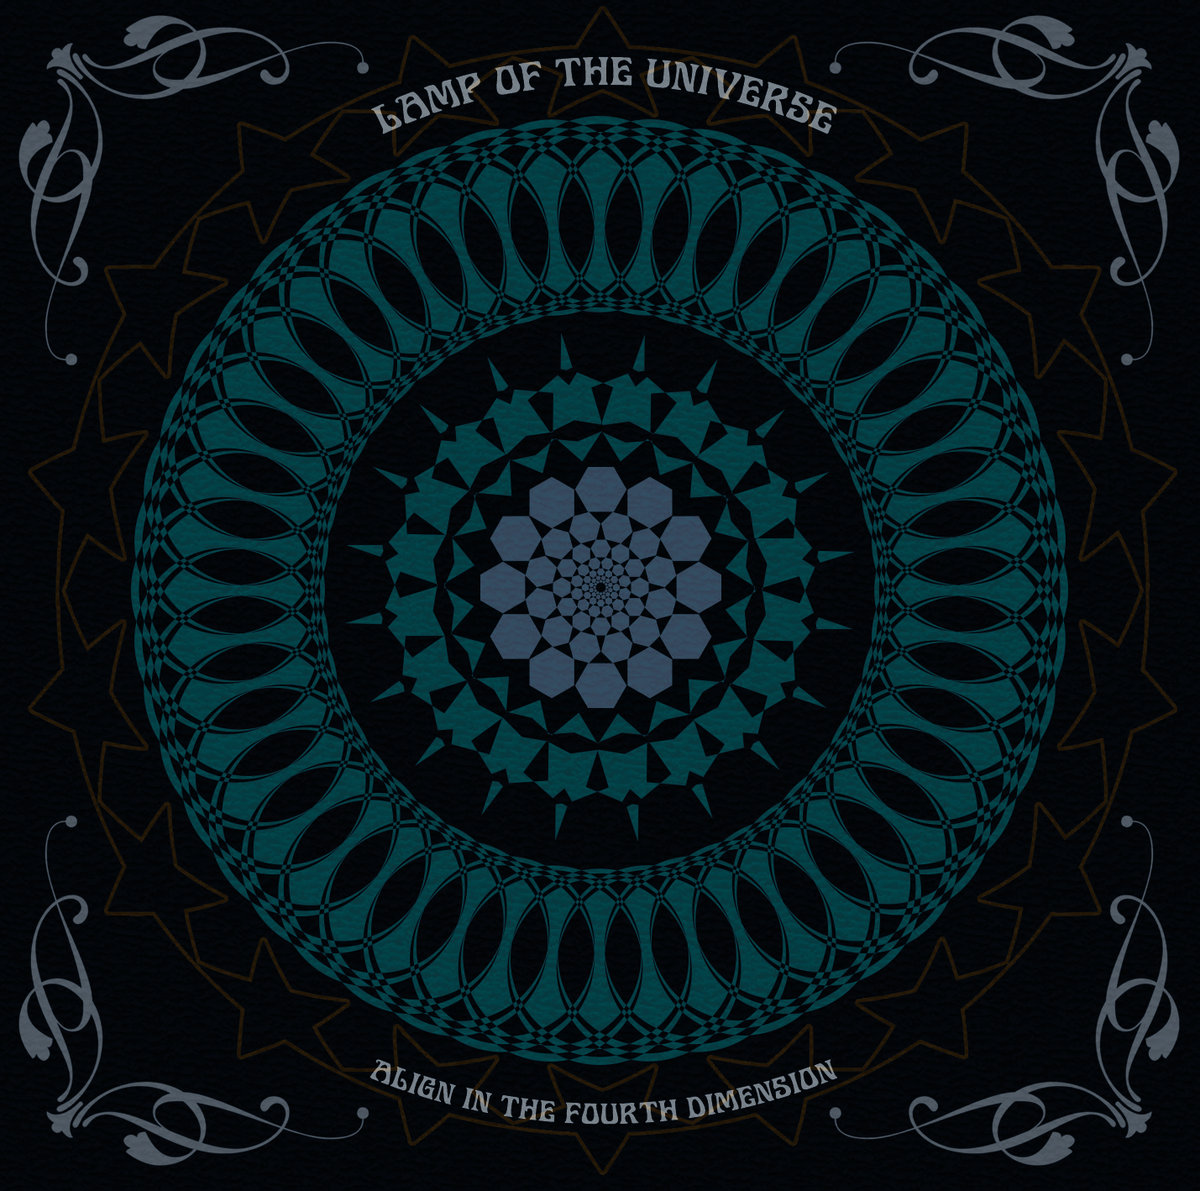 Lamp of the Universe Align in the Fourth Dimension